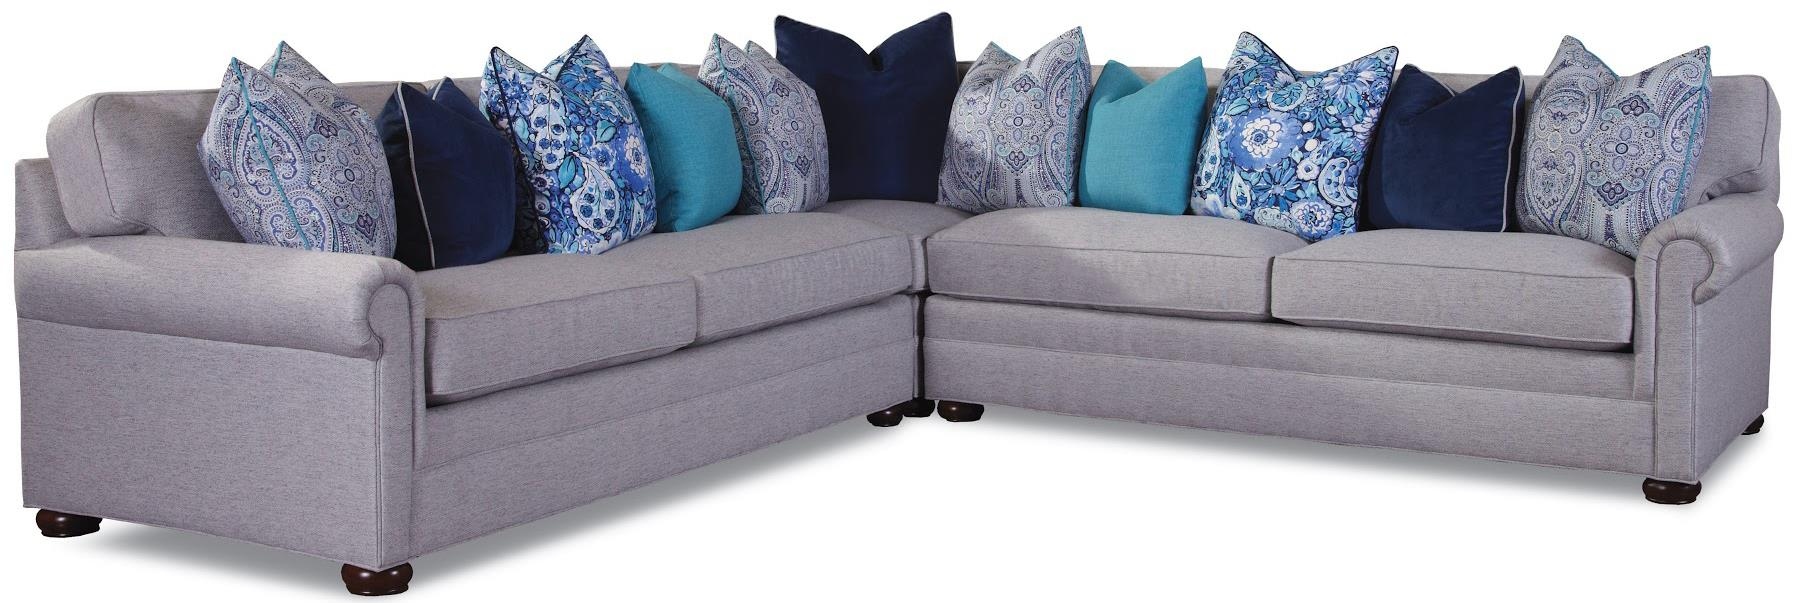 7169 Sectional by Huntington House at Belfort Furniture